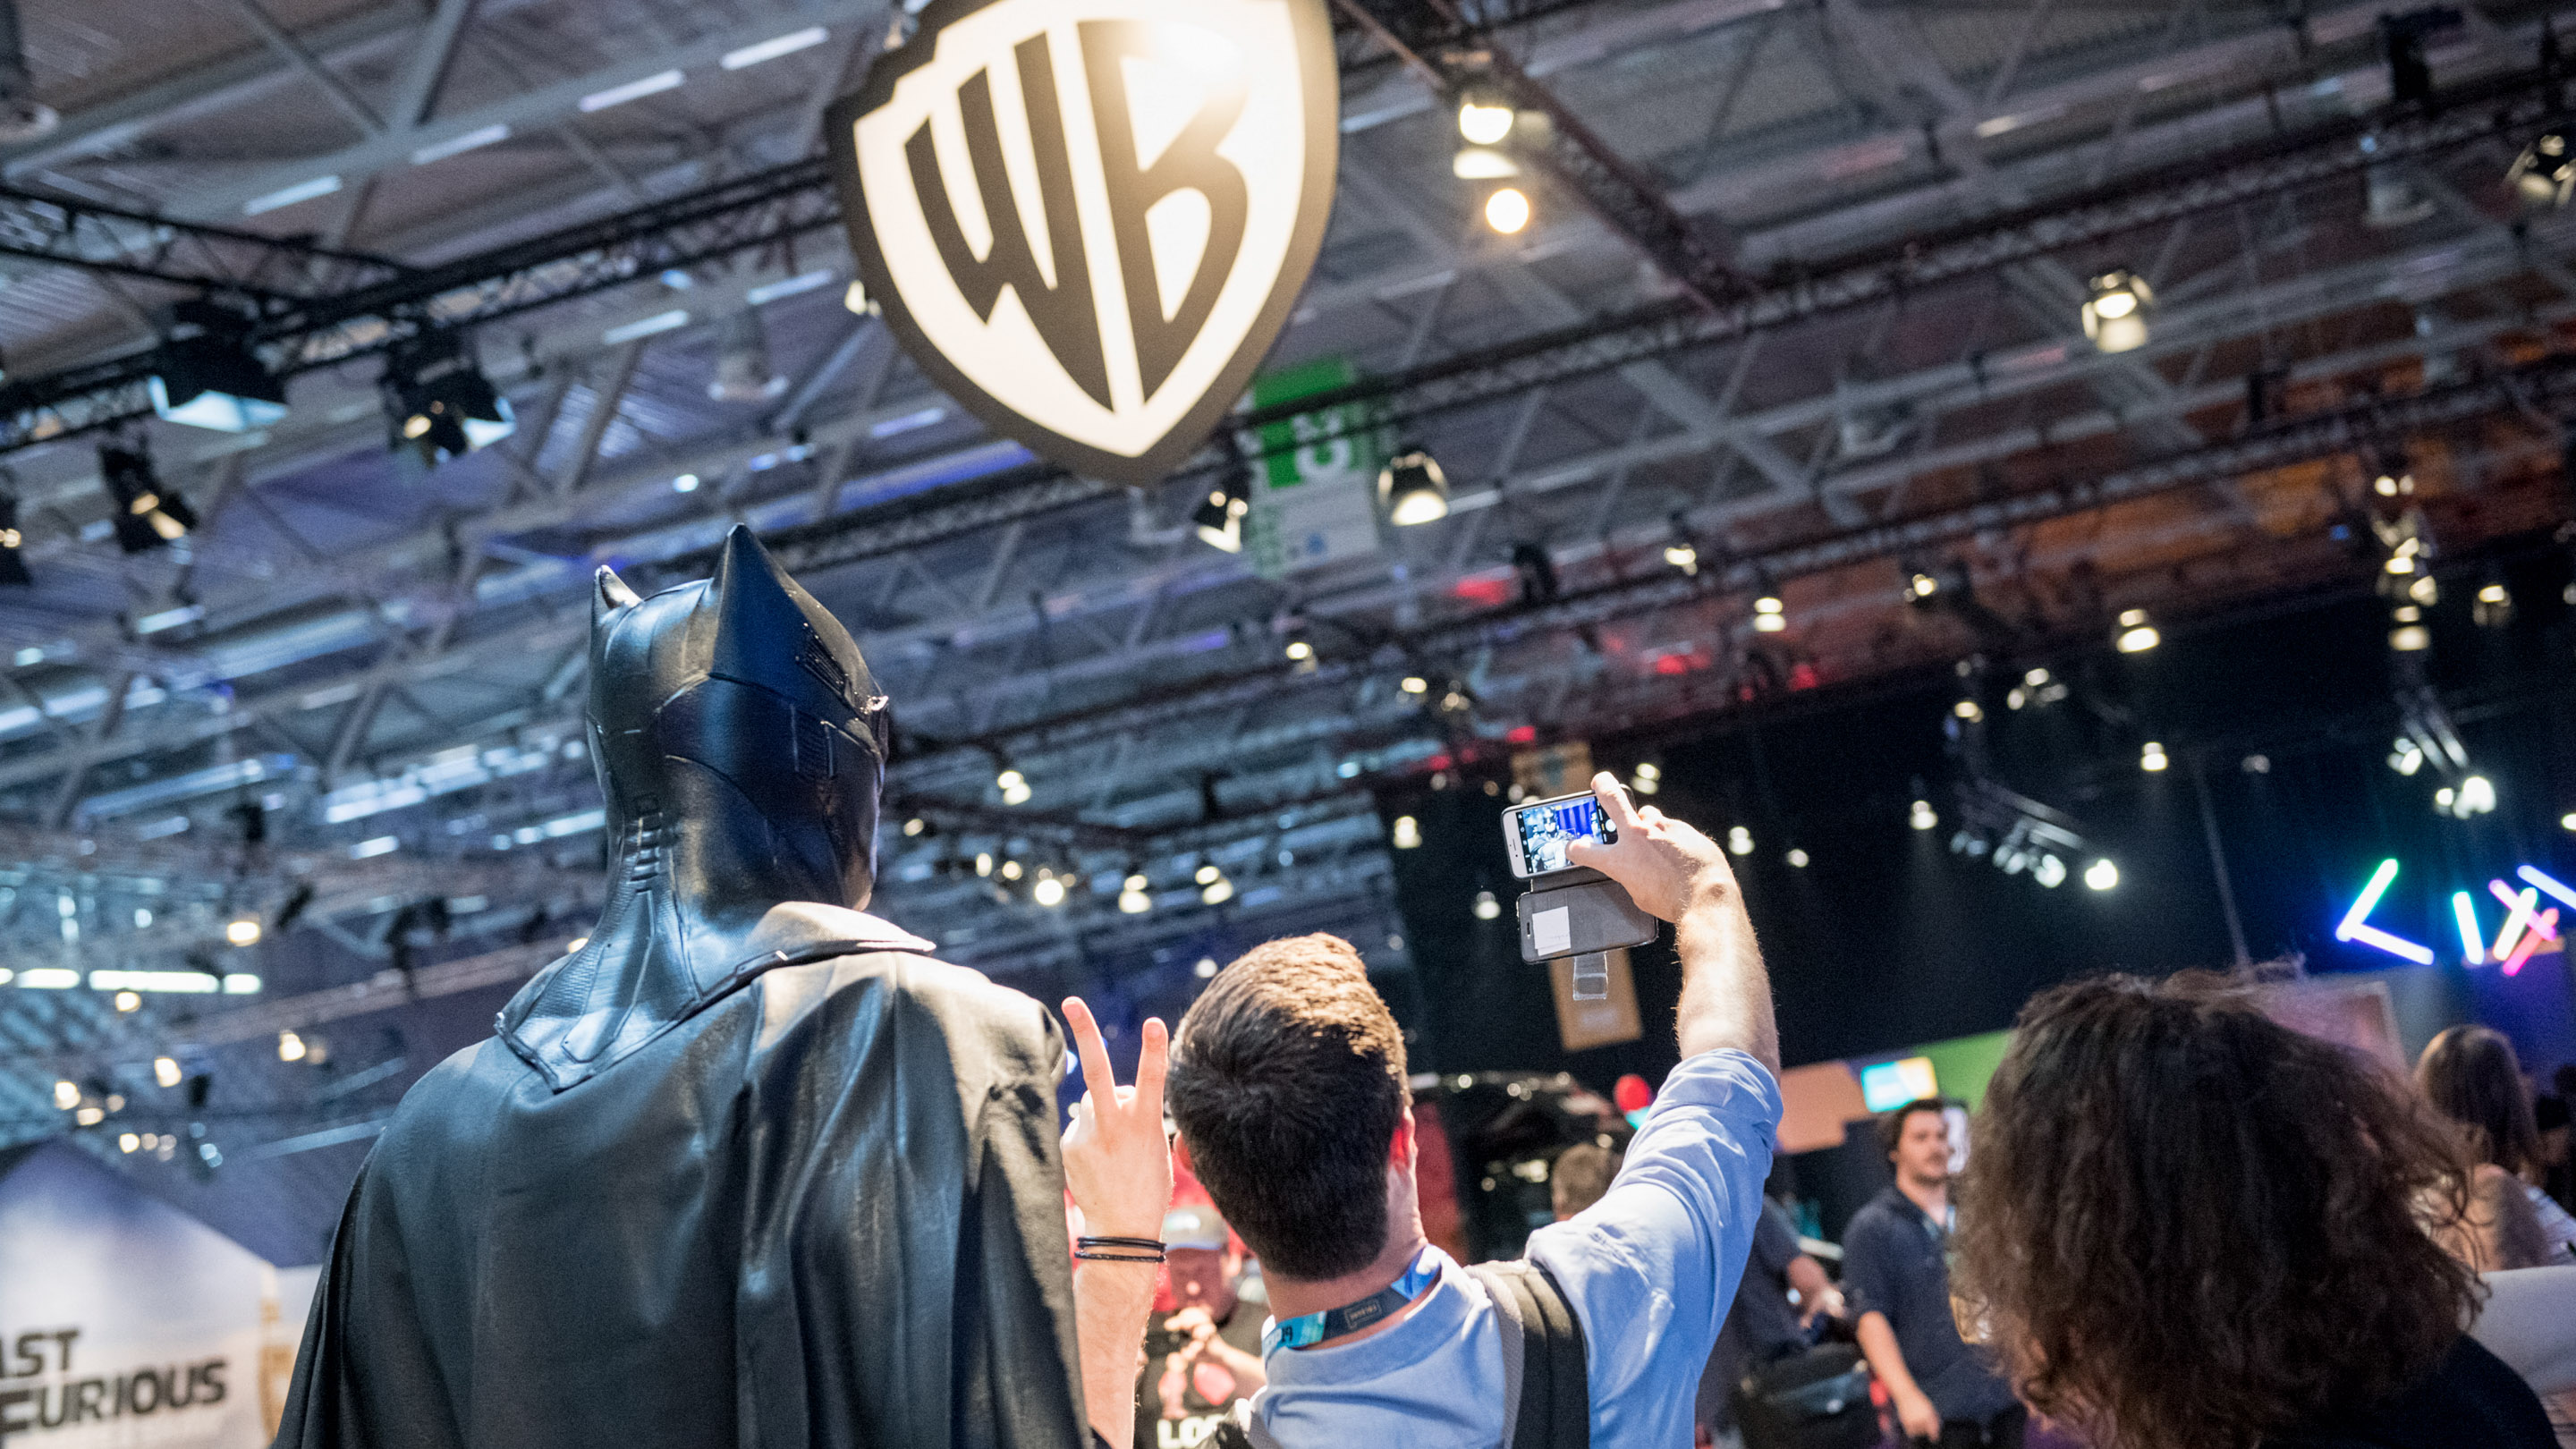 Stand: Batman, Halle 8, Comic Con Experience 2019